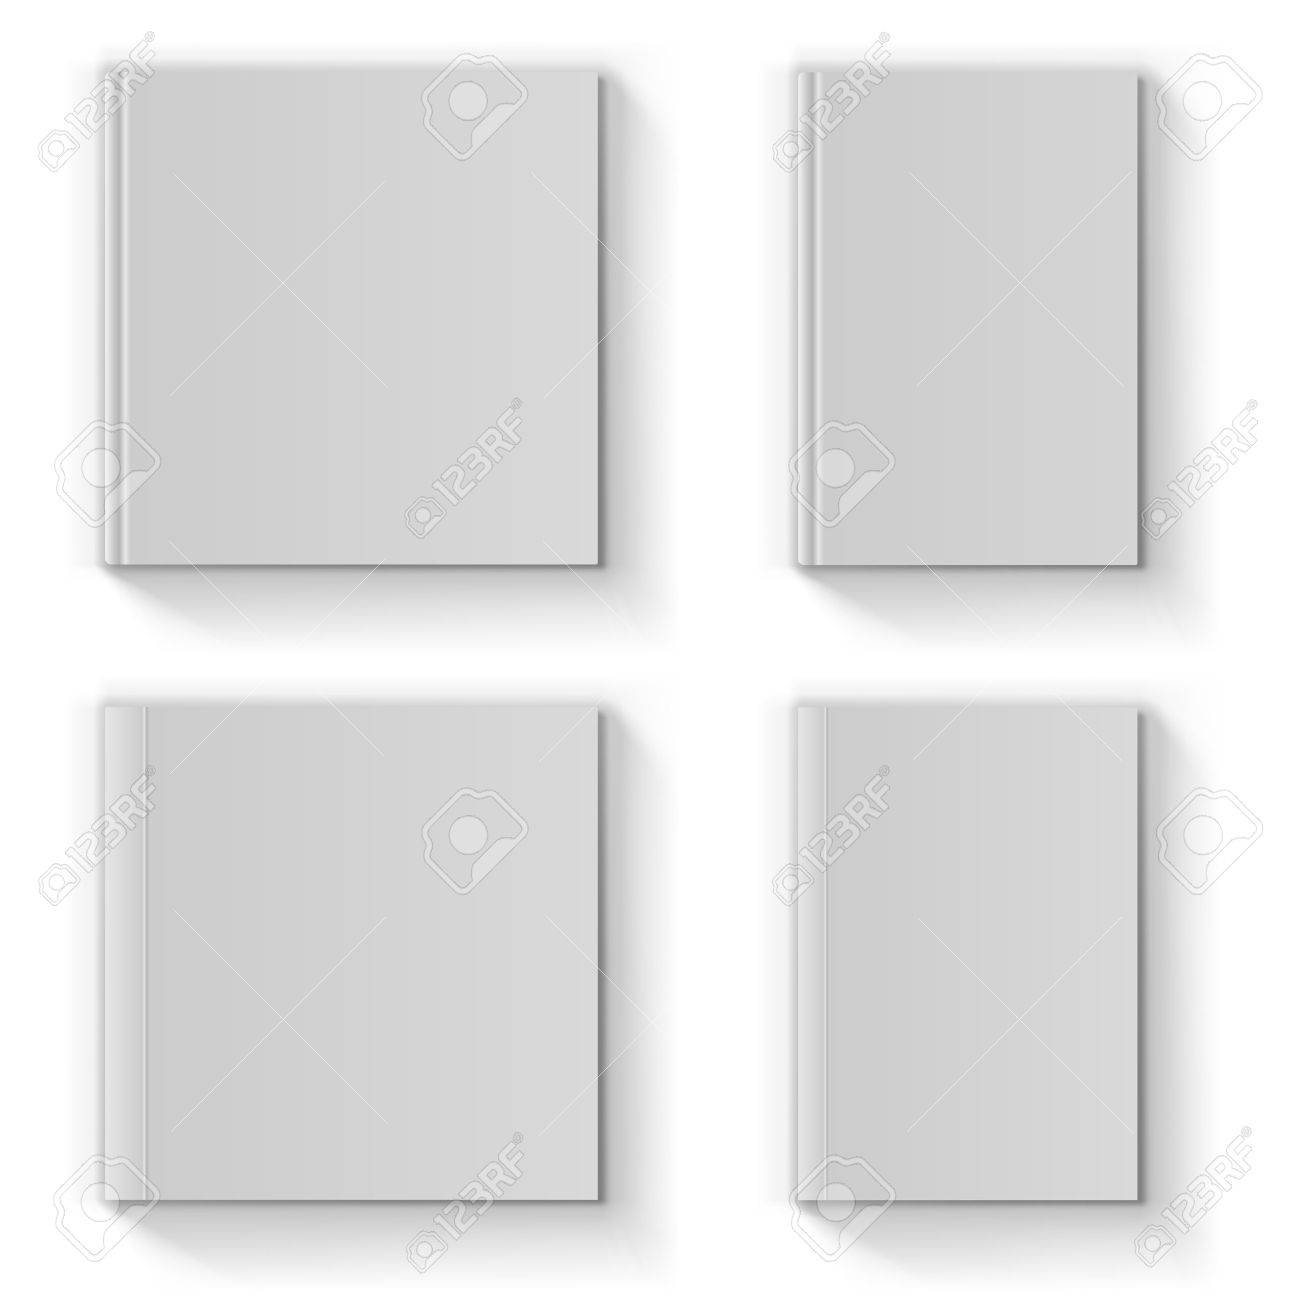 Blank book cover vector template isolated on white background - 29672189